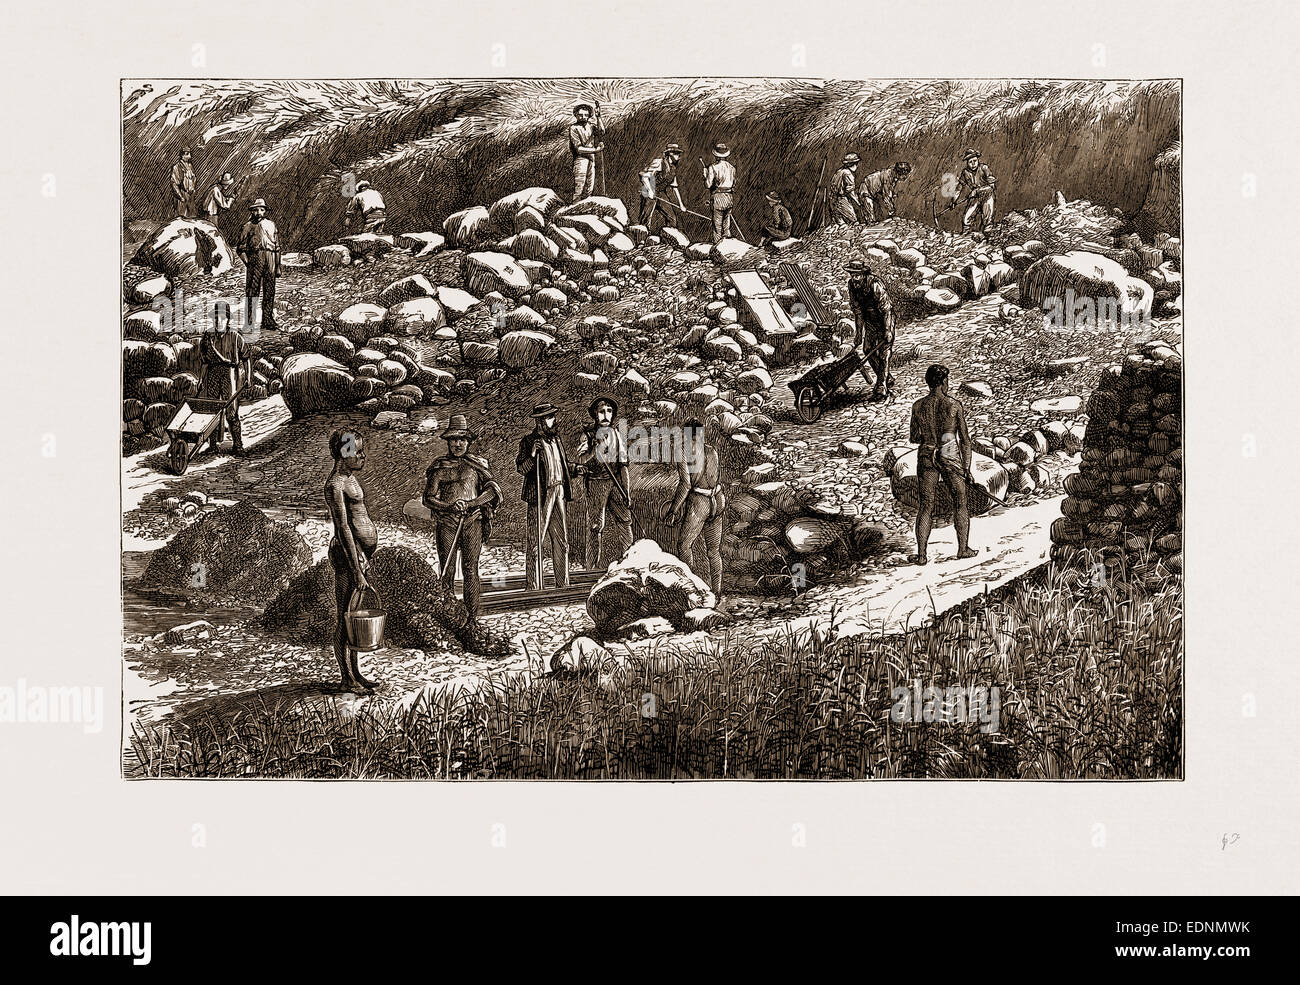 THE TRANSVAAL GOLD FIELDS, SOUTH AFRICA, 1875: DIGGERS AT WORK - Stock Image